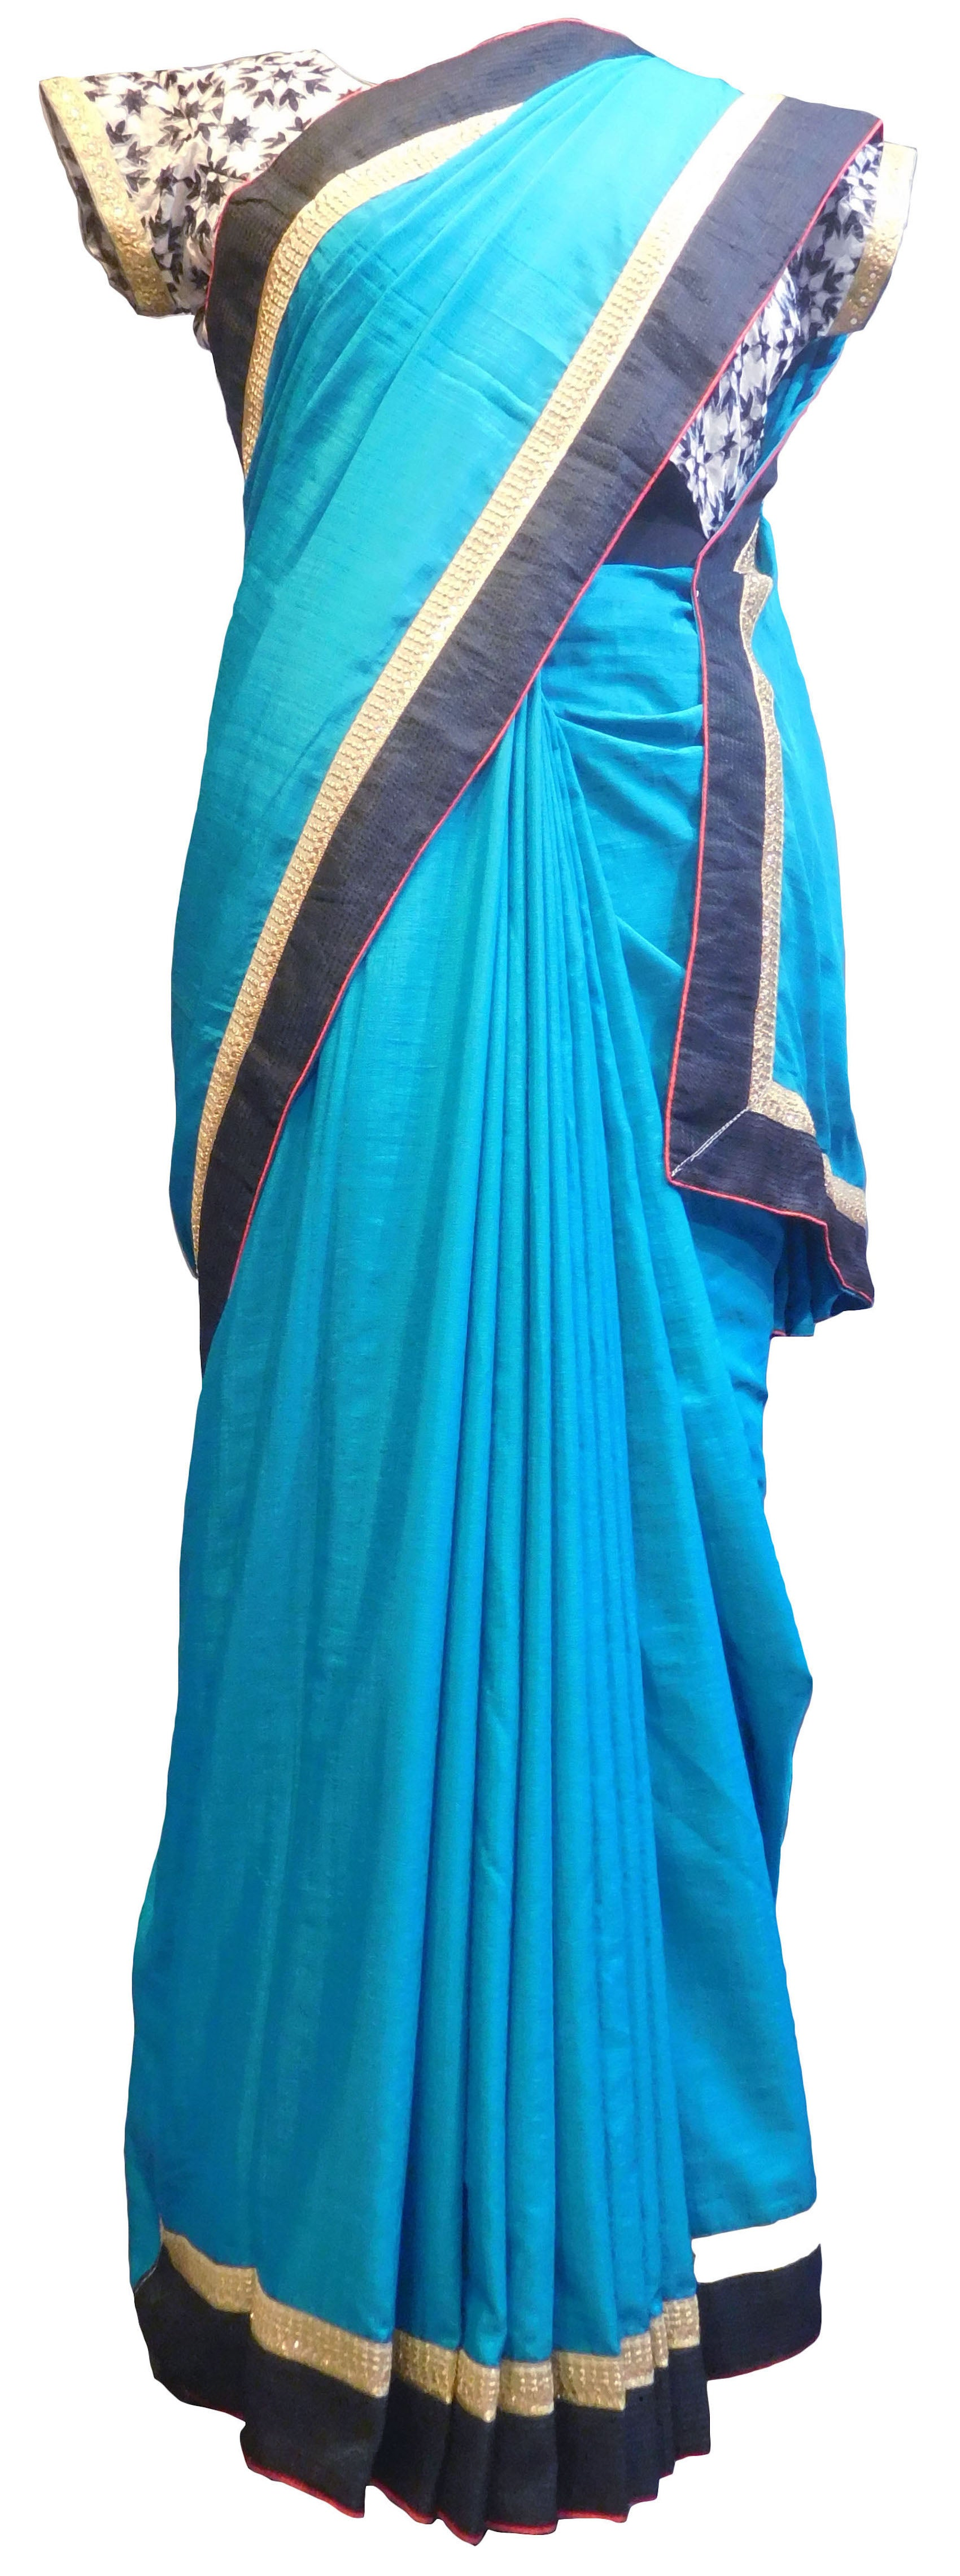 SMSAREE Blue Designer Wedding Partywear Silk Thread Zari & Stone Hand Embroidery Work Bridal Saree Sari With Blouse Piece E843